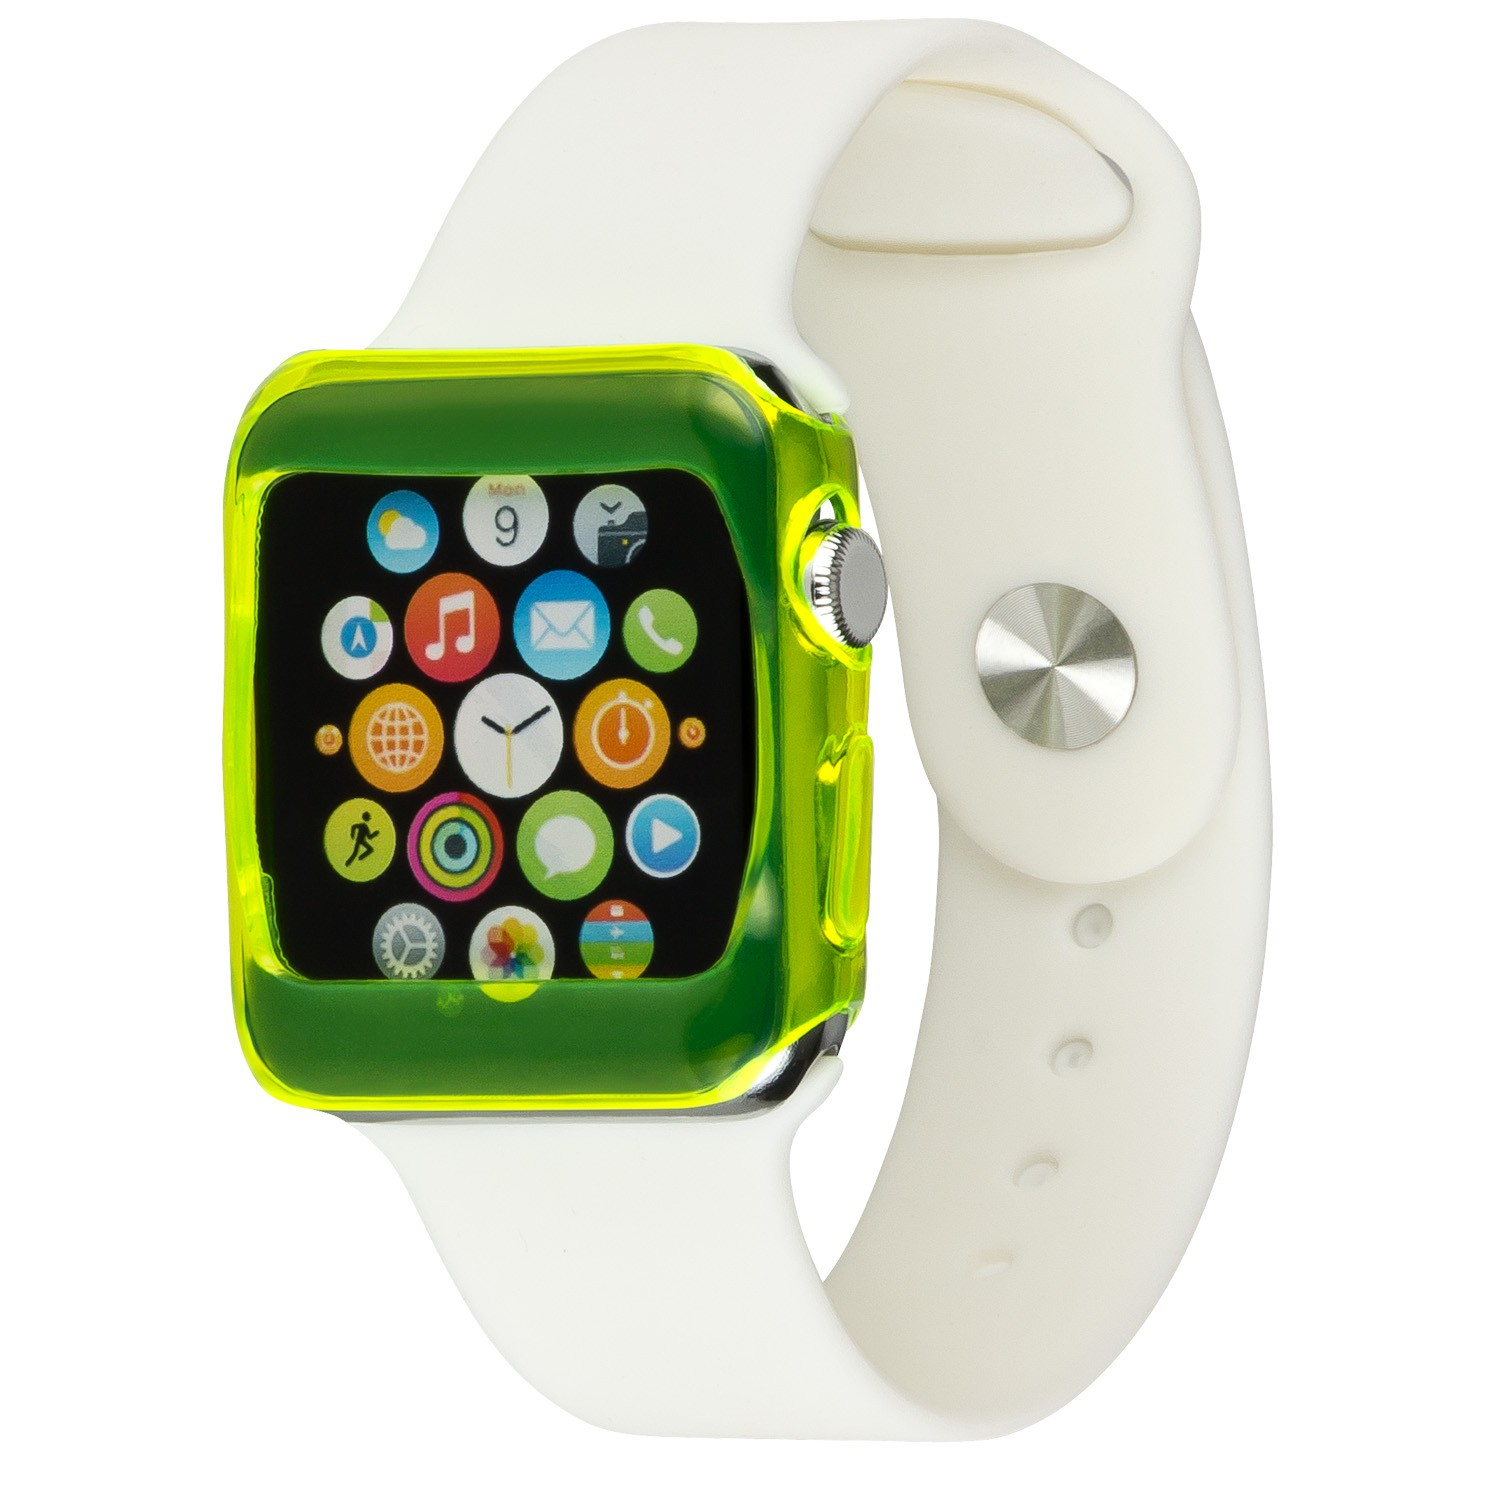 Yemota Pro Slimcase Apple Watch 38mm - Gelb / Transparent